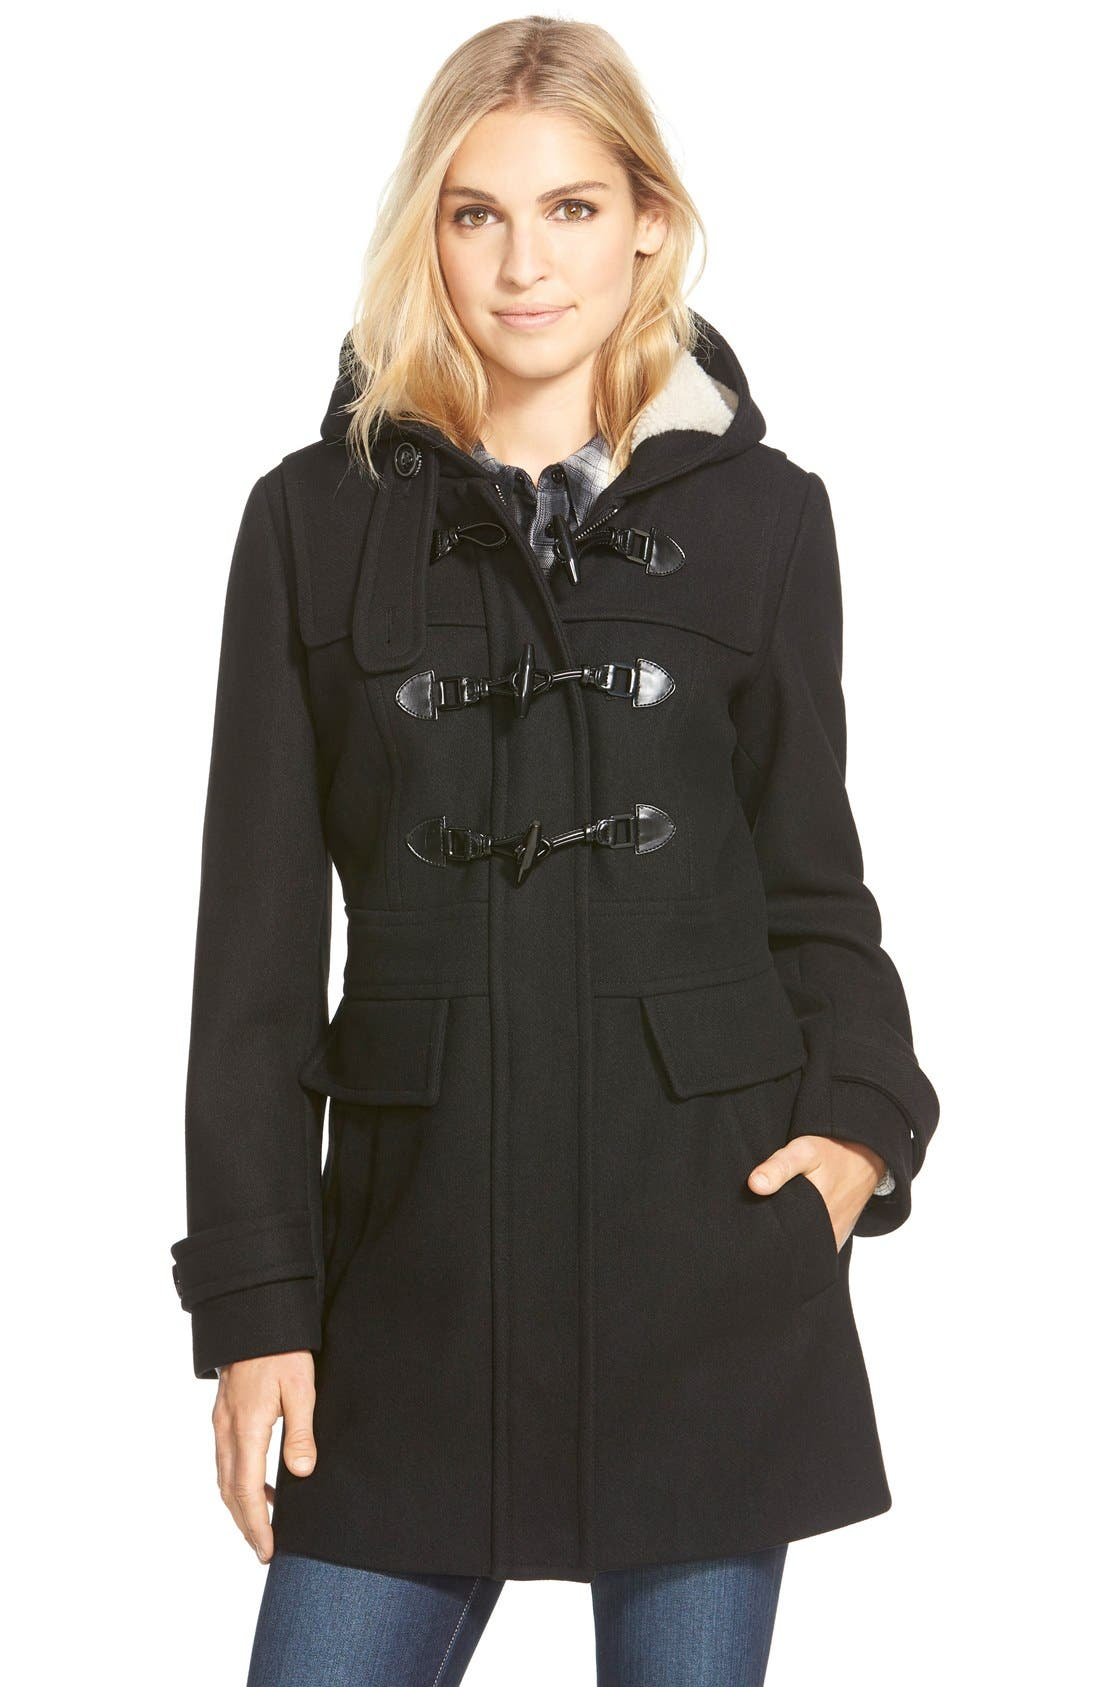 Alternate Image 1 Selected - London Fog Wool Blend Duffle Coat with Faux Shearling Lined Hood